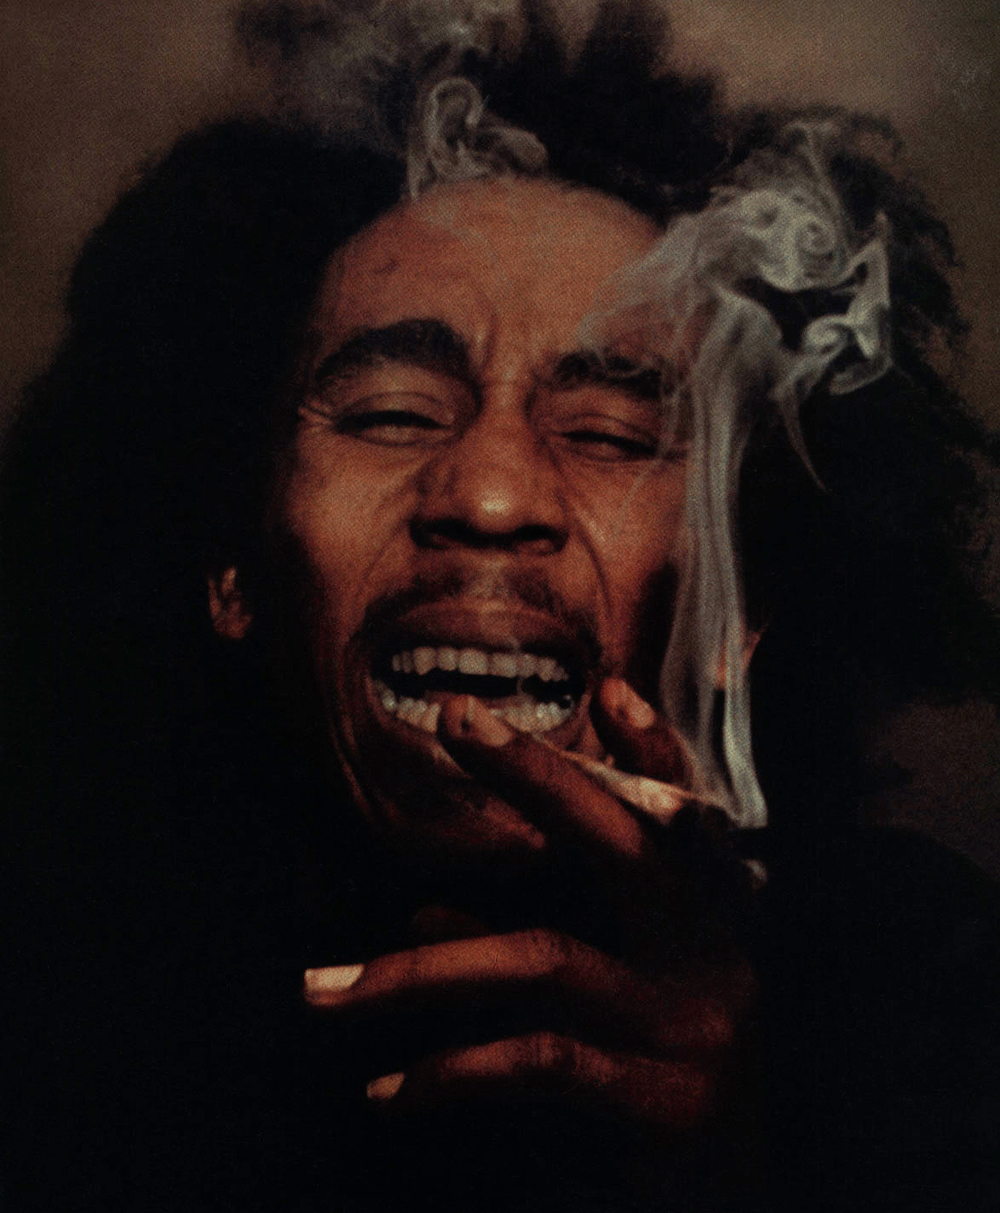 Bob Marley suffering from marijuana use.jpg